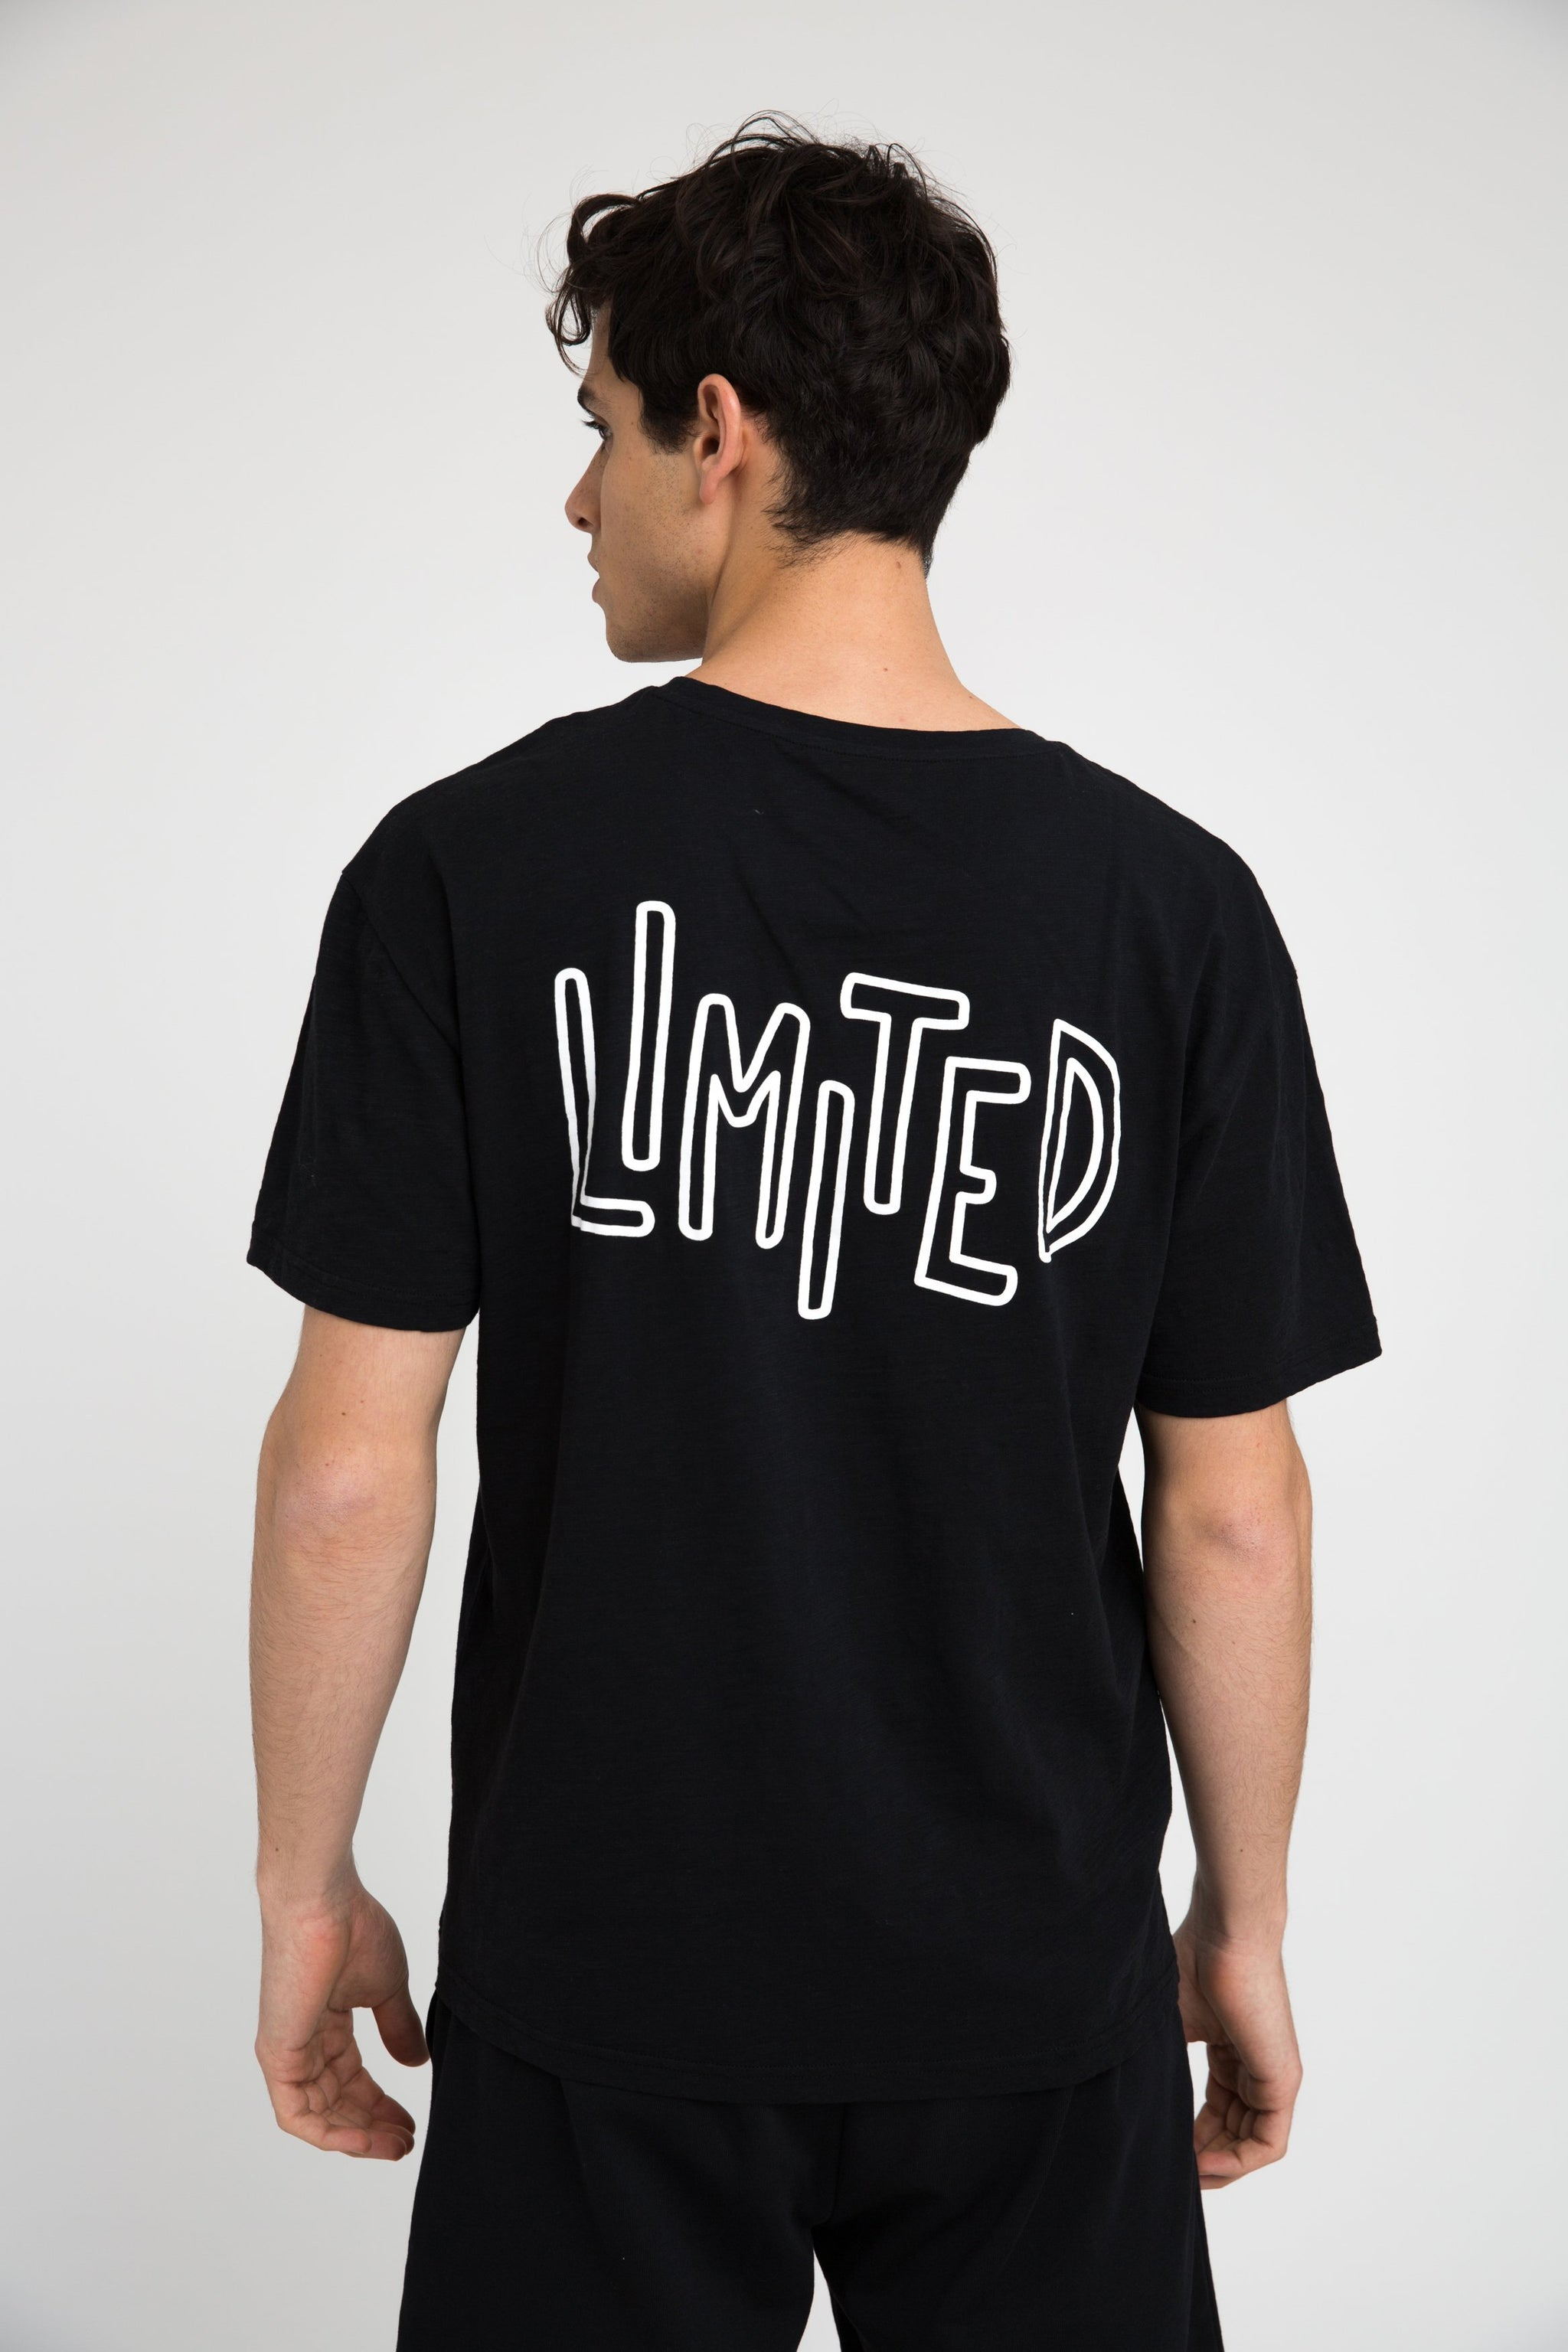 Limited Tee